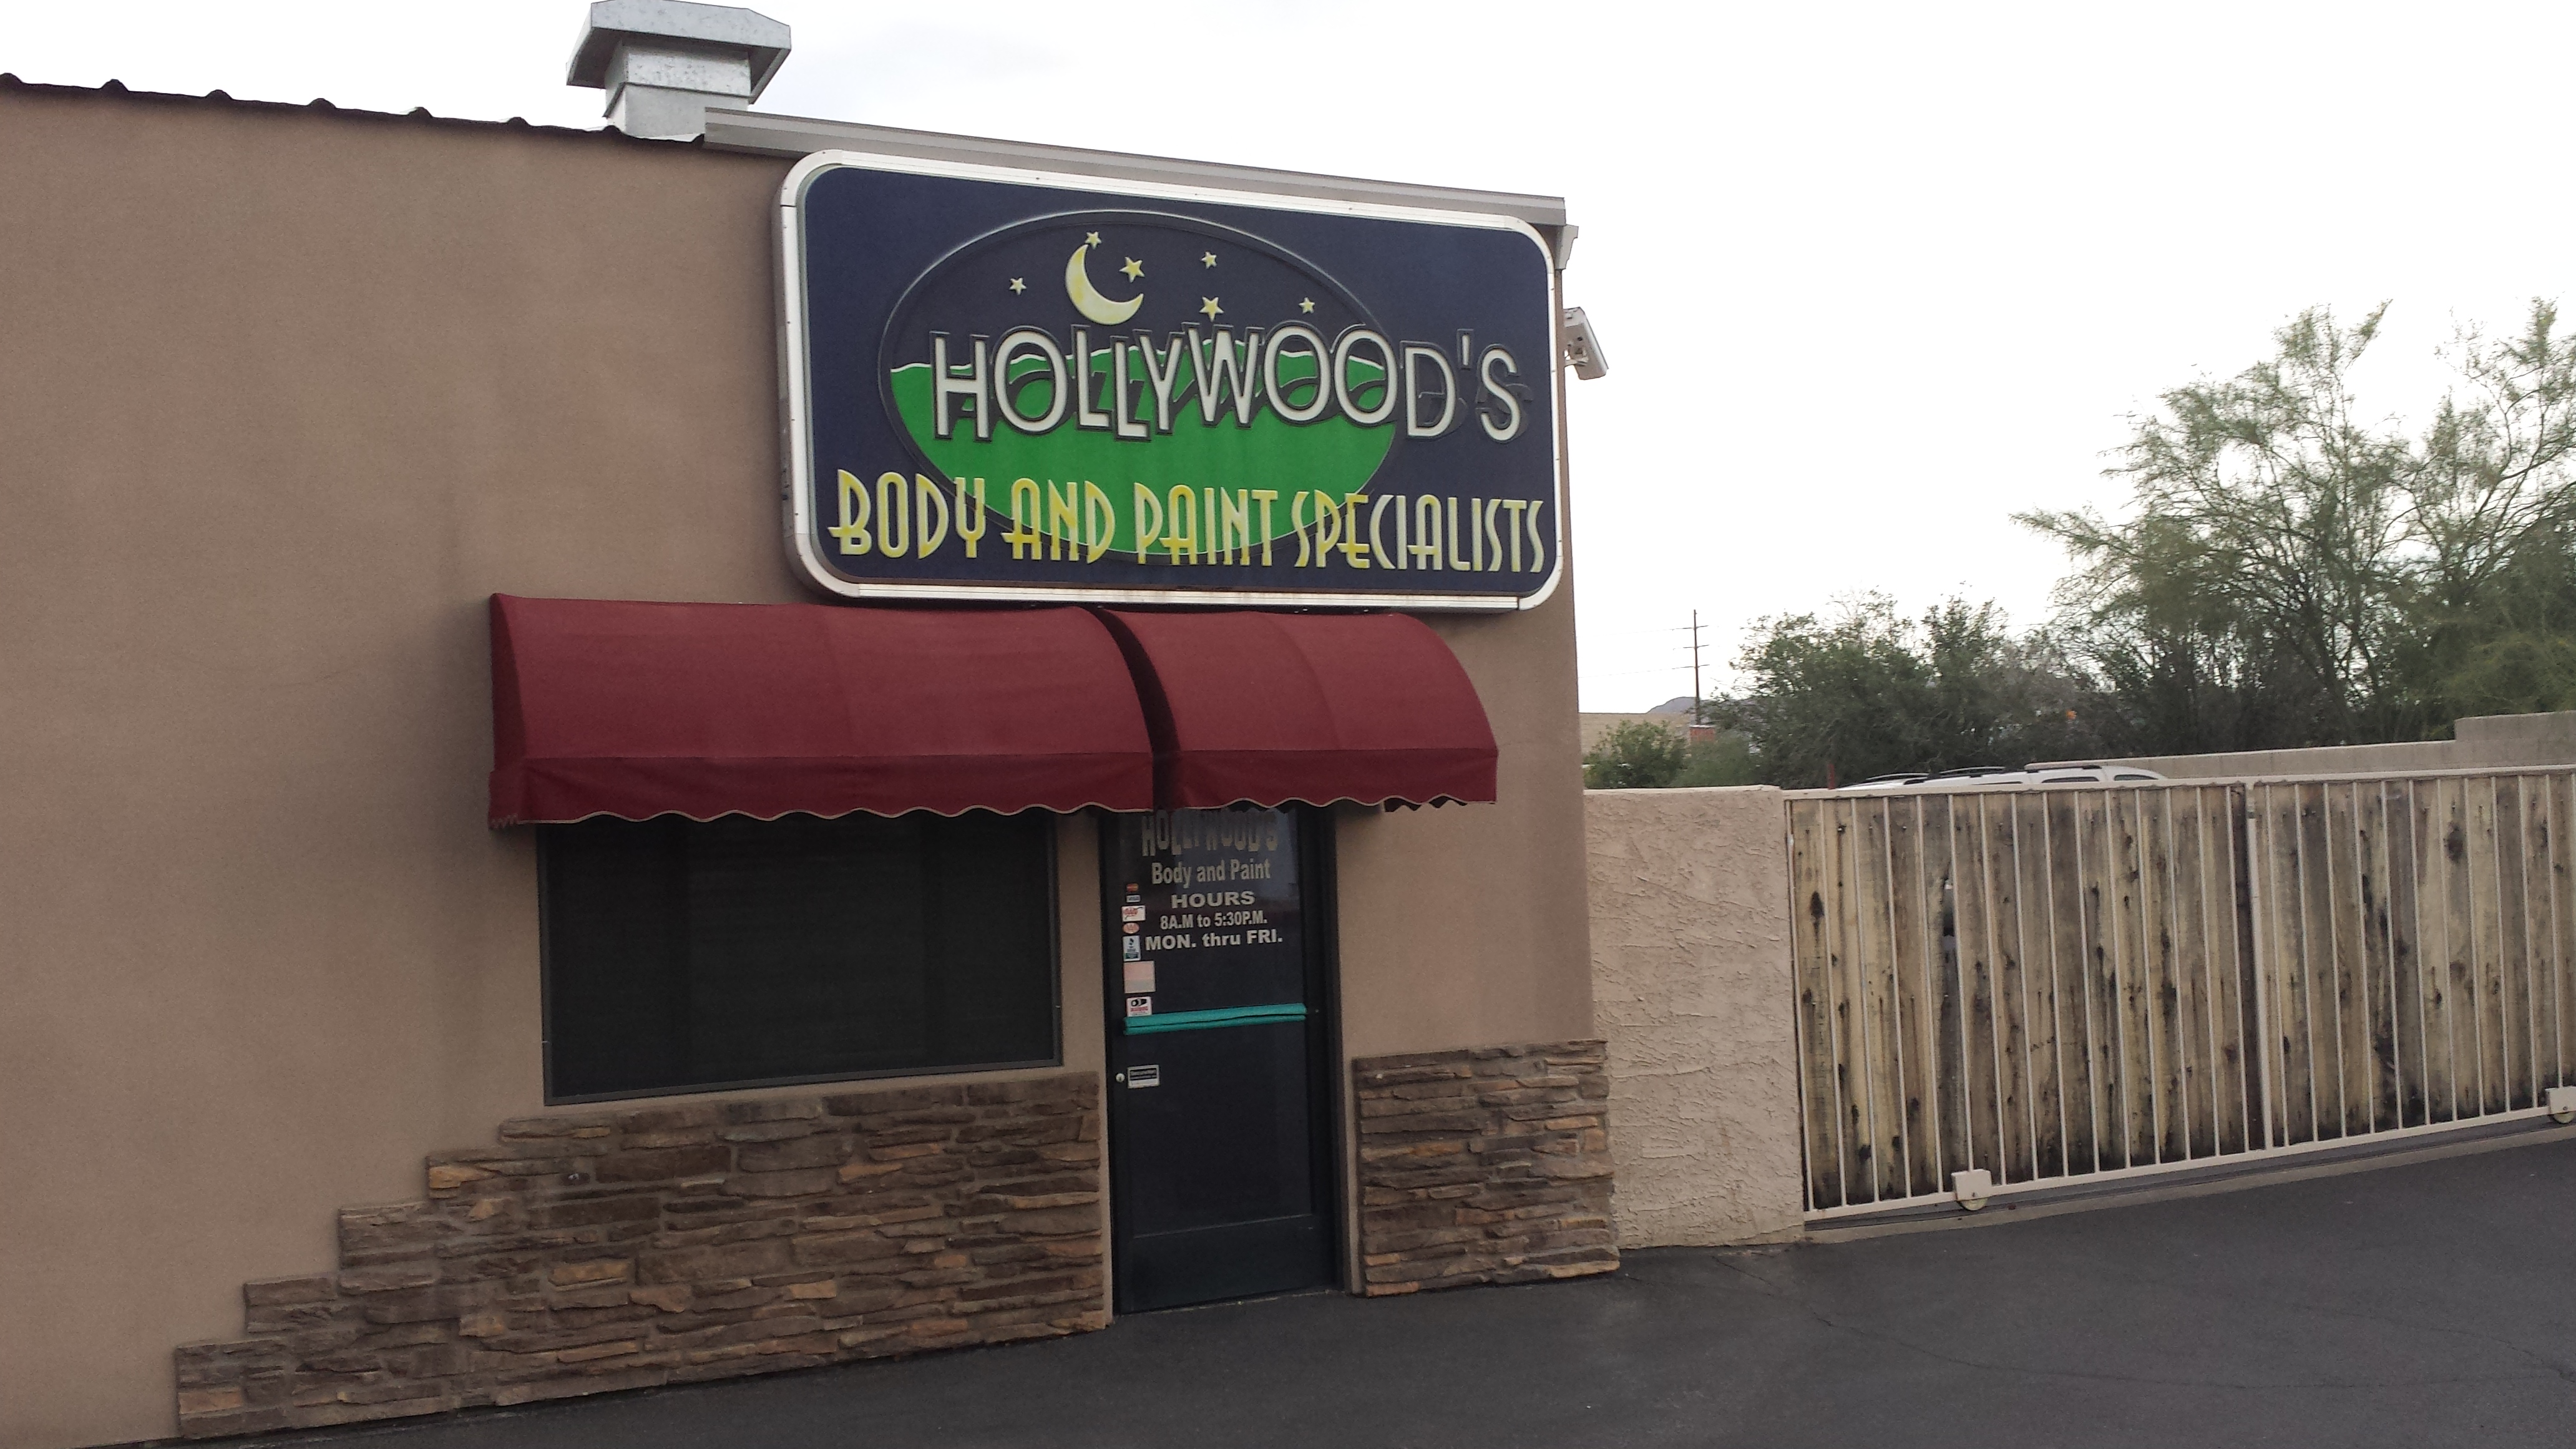 Fountain Hills Hollywoods Body and Paint